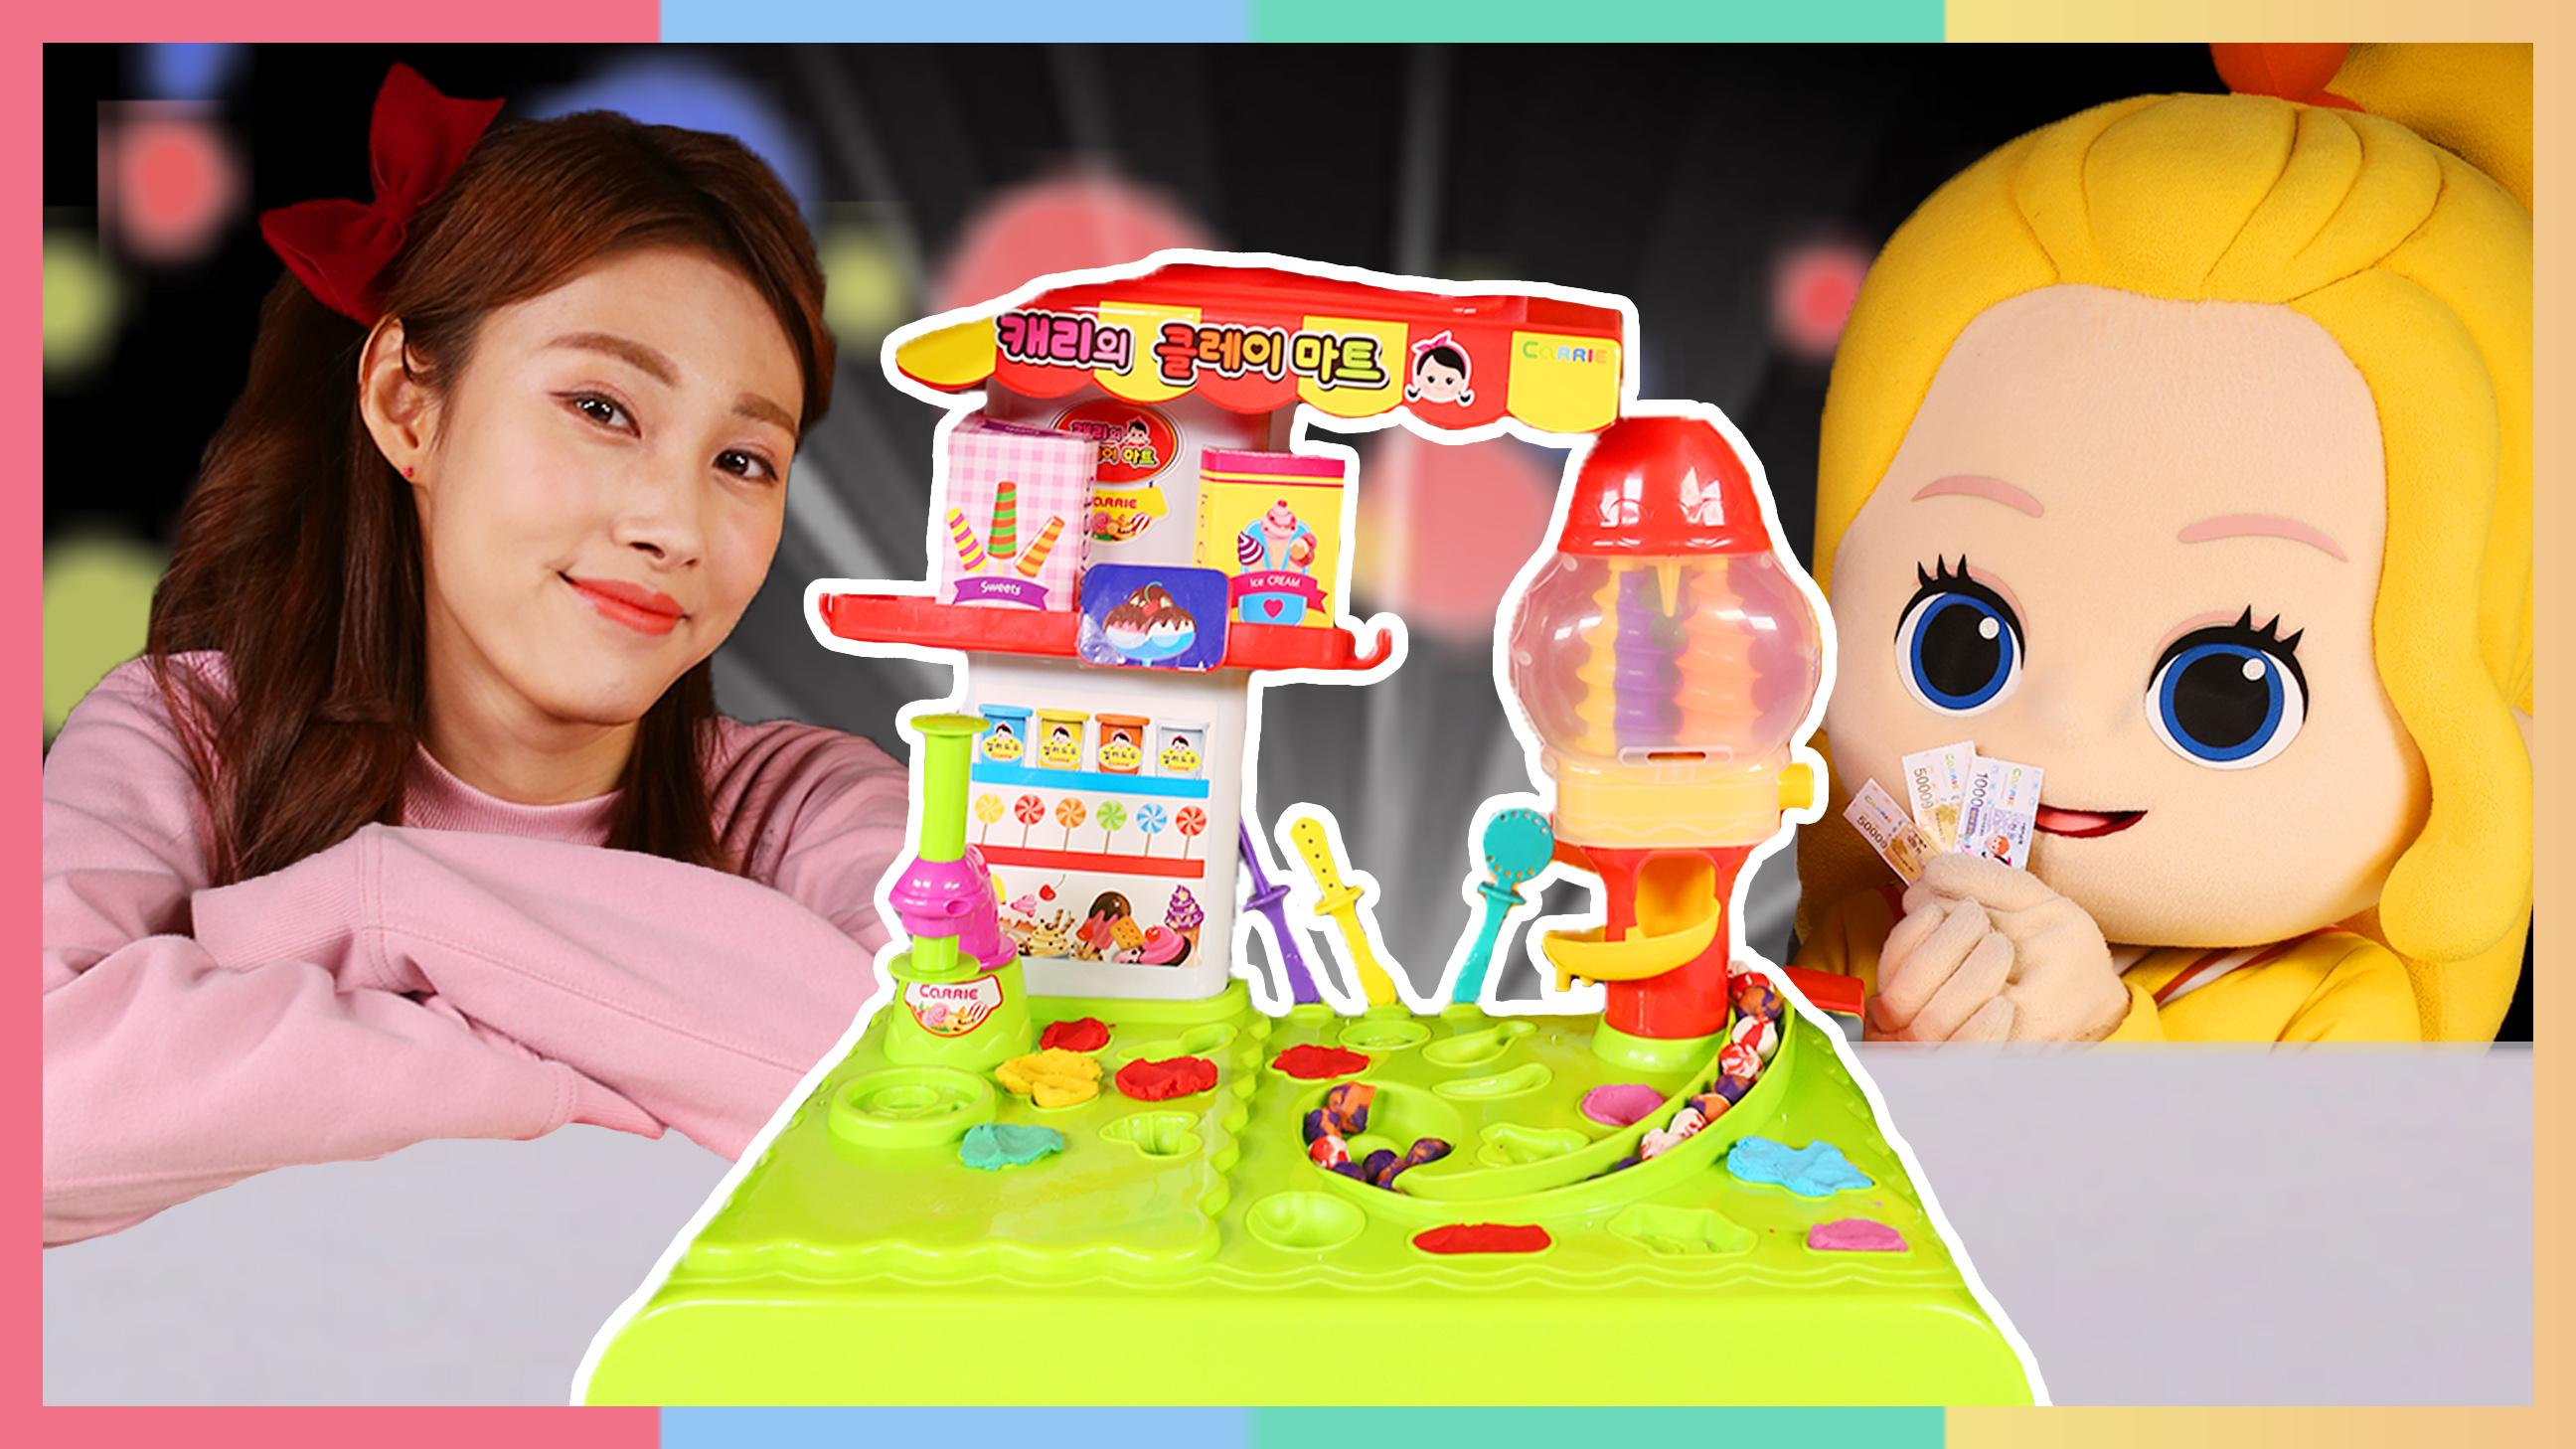 用培乐多橡皮泥制作美味的超市零食吧 | 凯利和玩具朋友们 CarrieAndToys